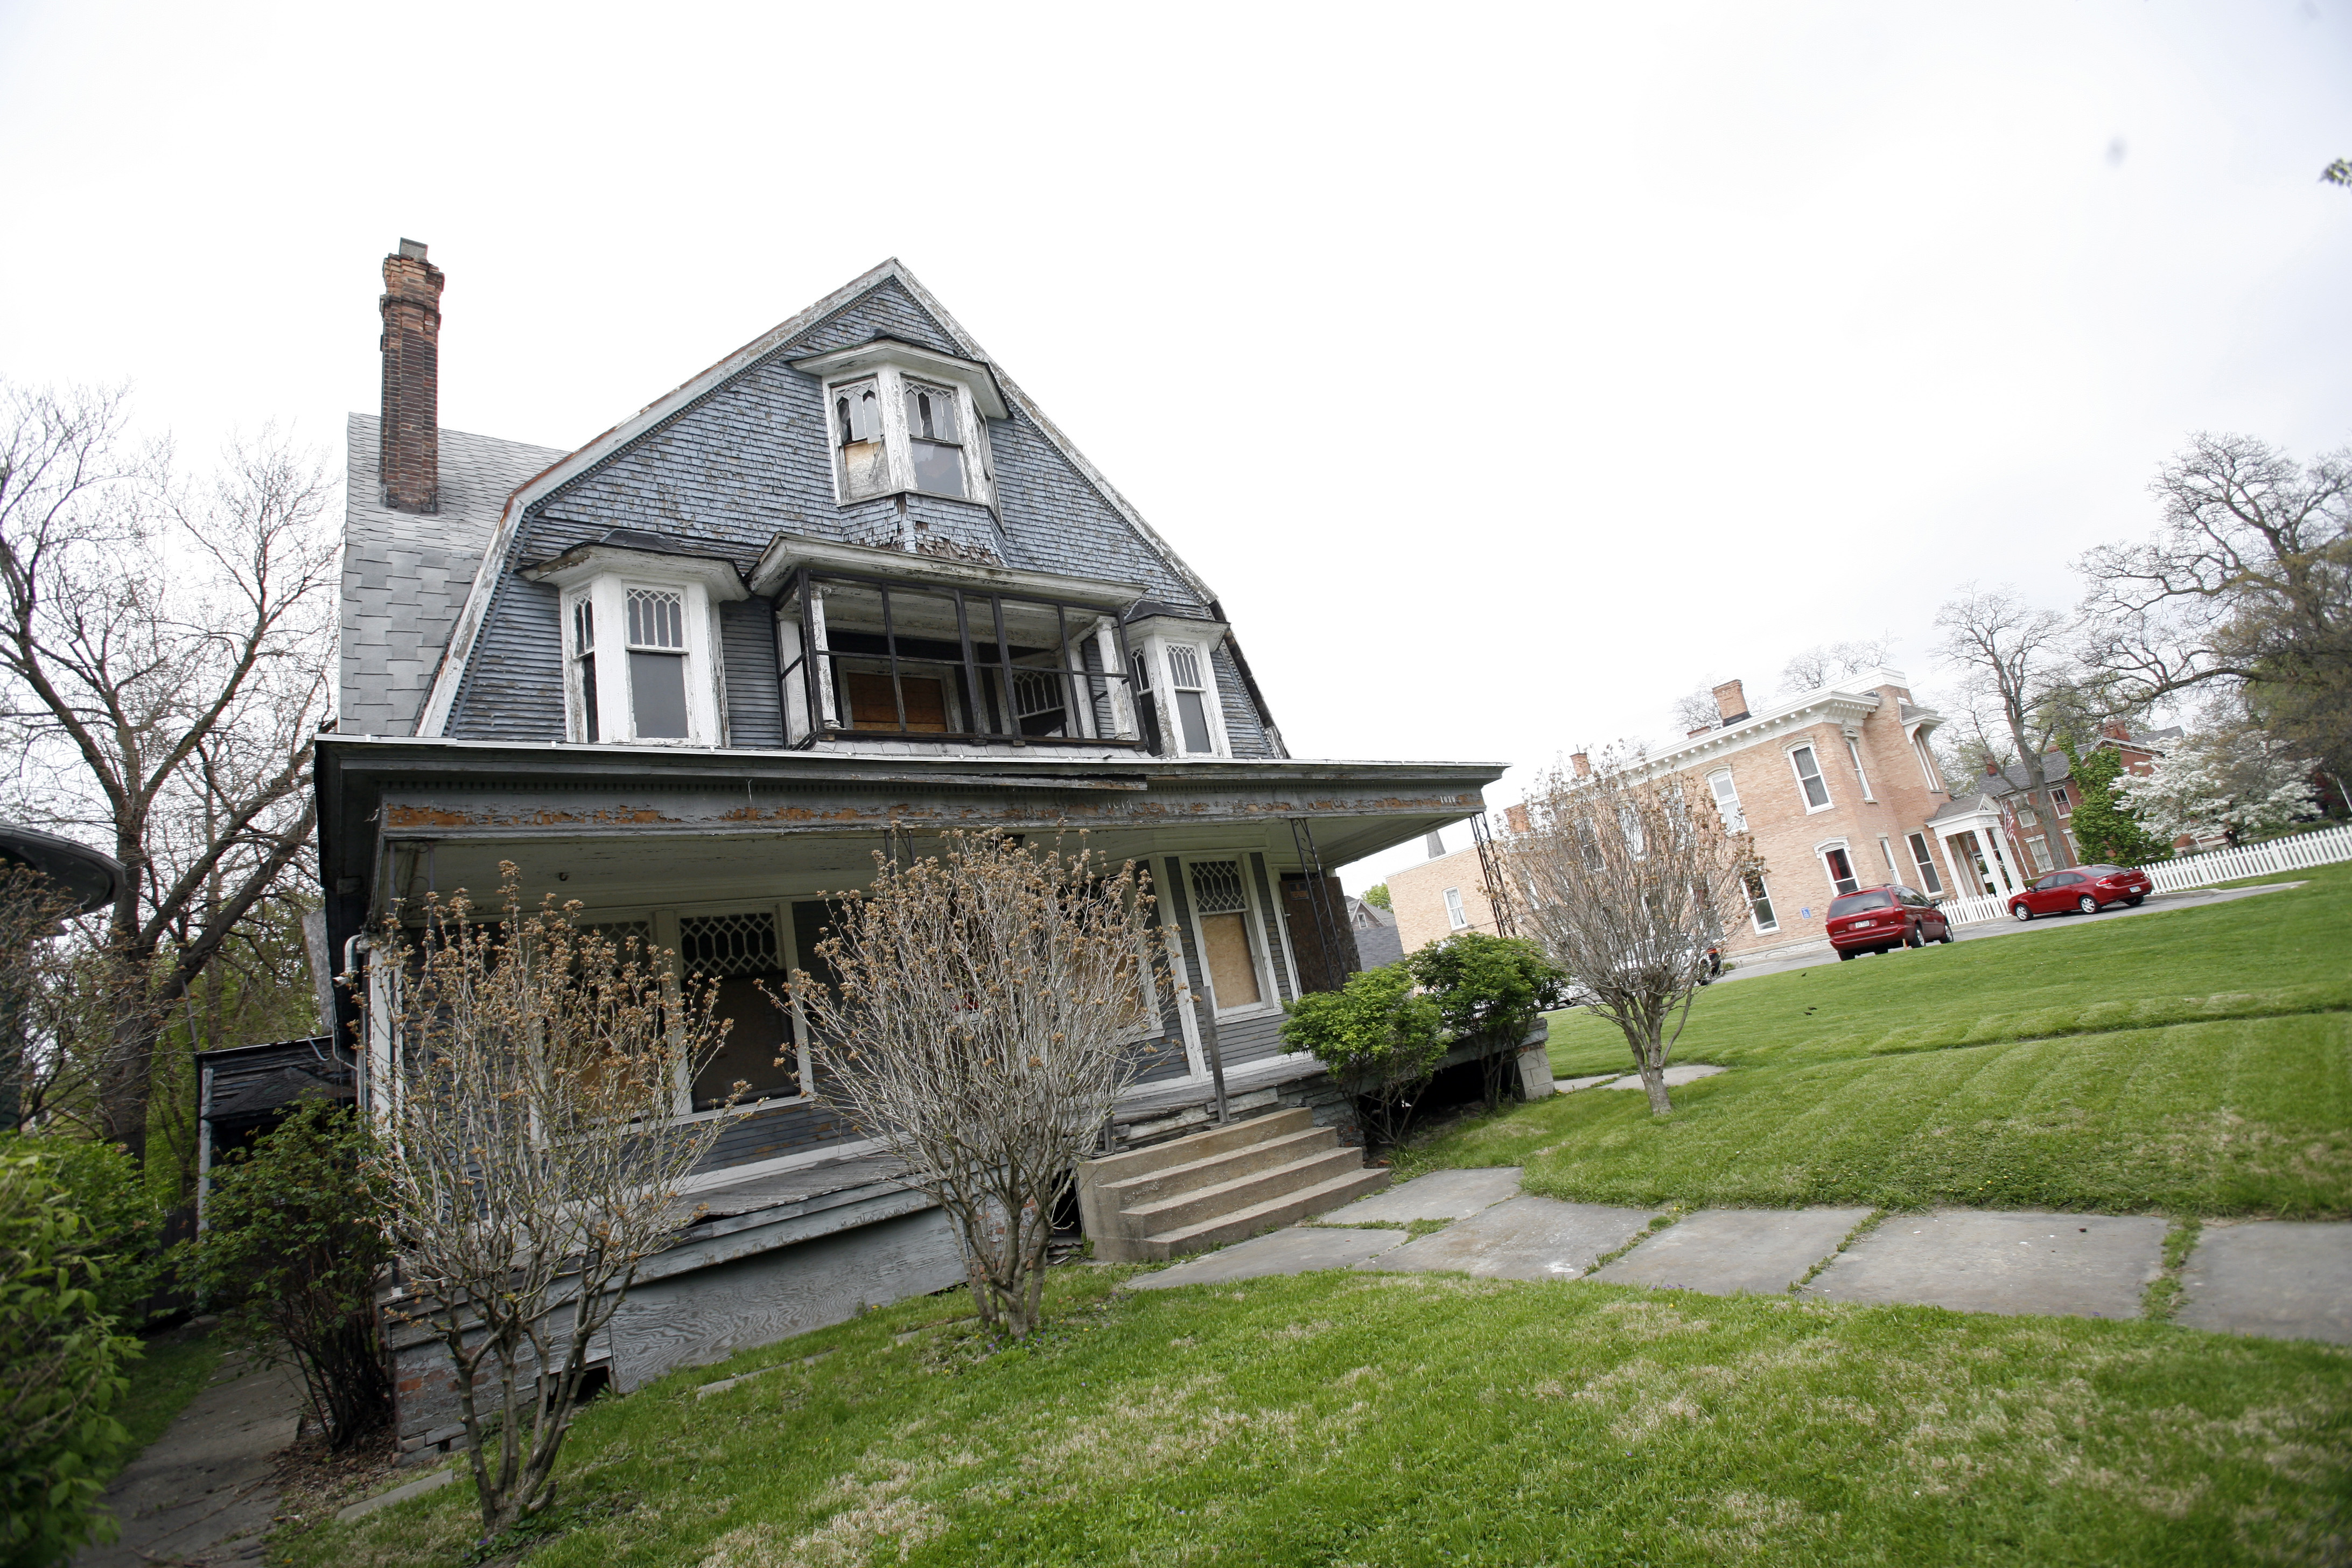 Aurora house 39 s master plan hits snag over fate of property for House aurora